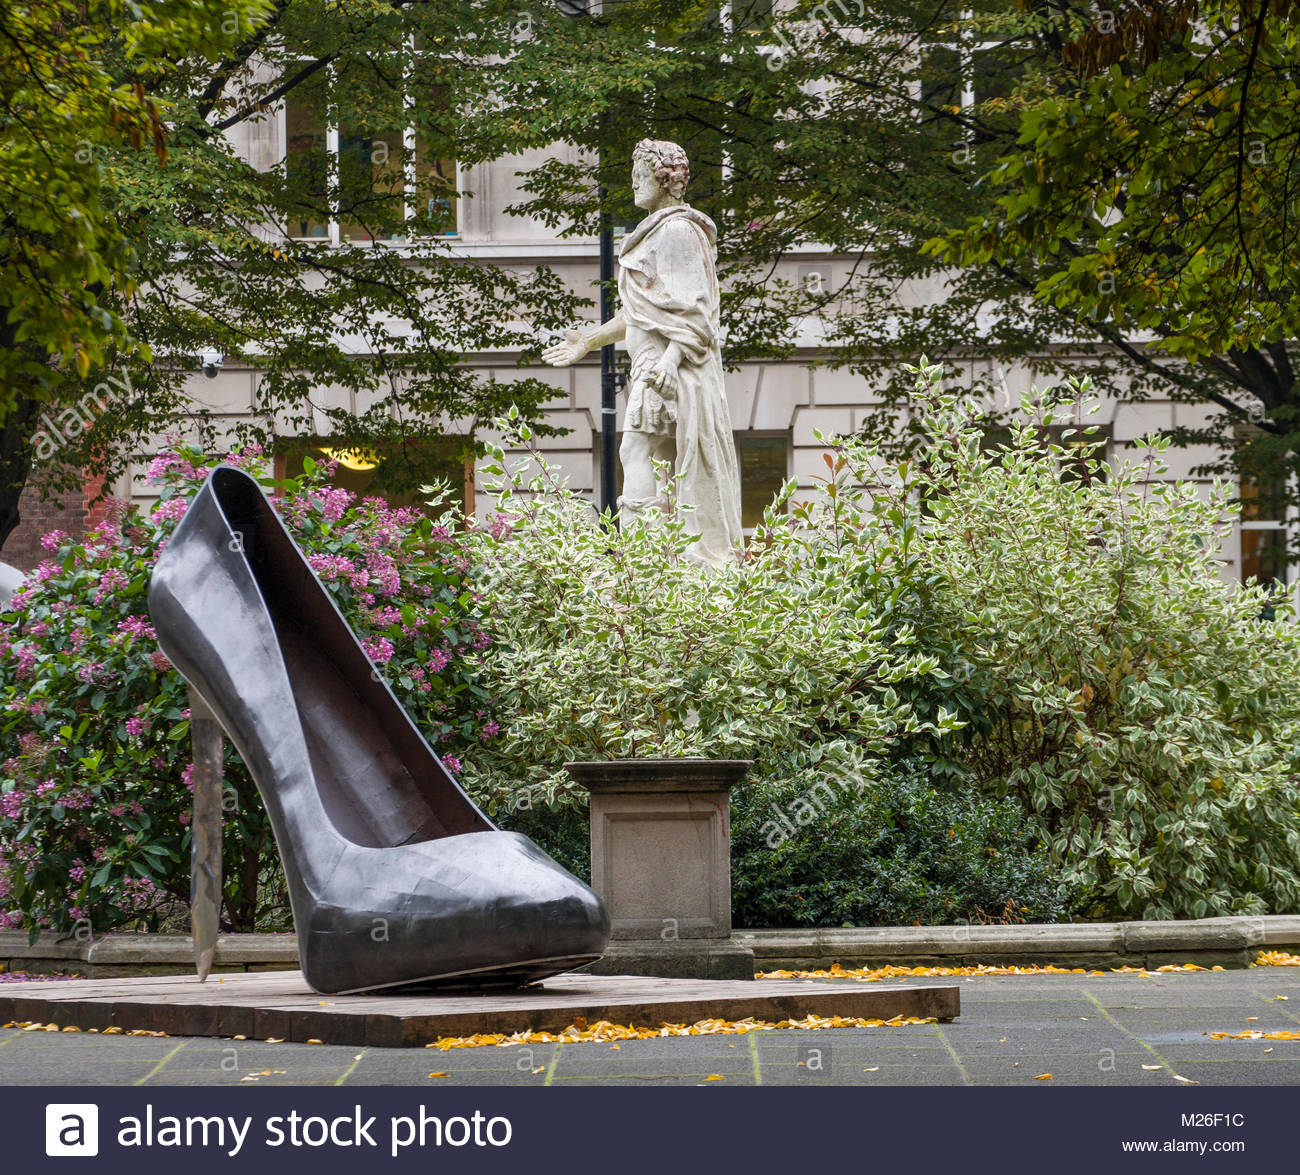 Stiletto Heel sculpture by Kalliopi Lemos in Golden Square, City of Westminster, London, England, United Kingdom - Stock Image